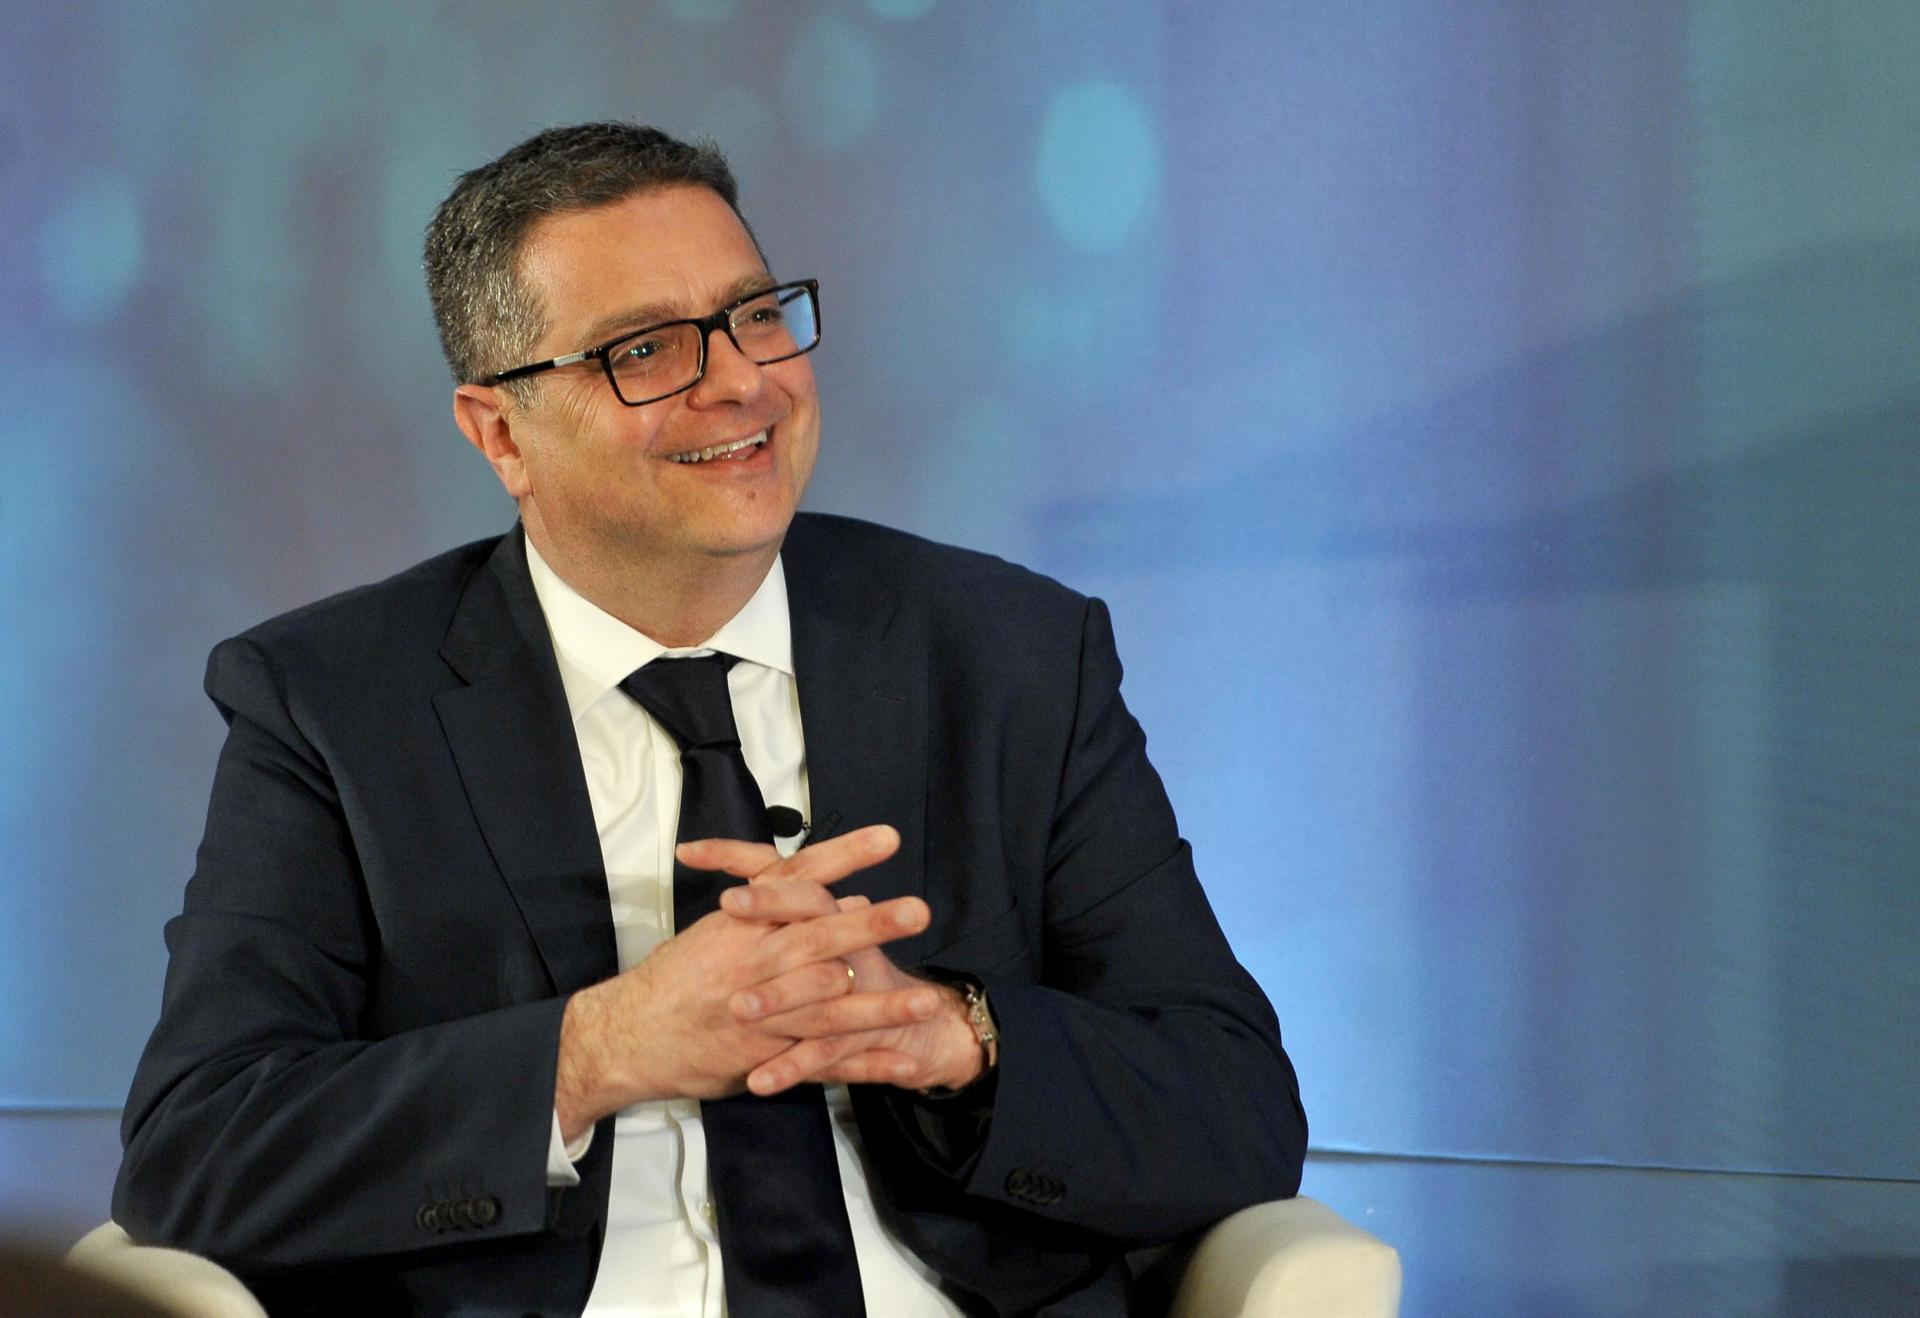 Adrian Delia stunned MPs by telling the press after the meeting that he would not be resigning.